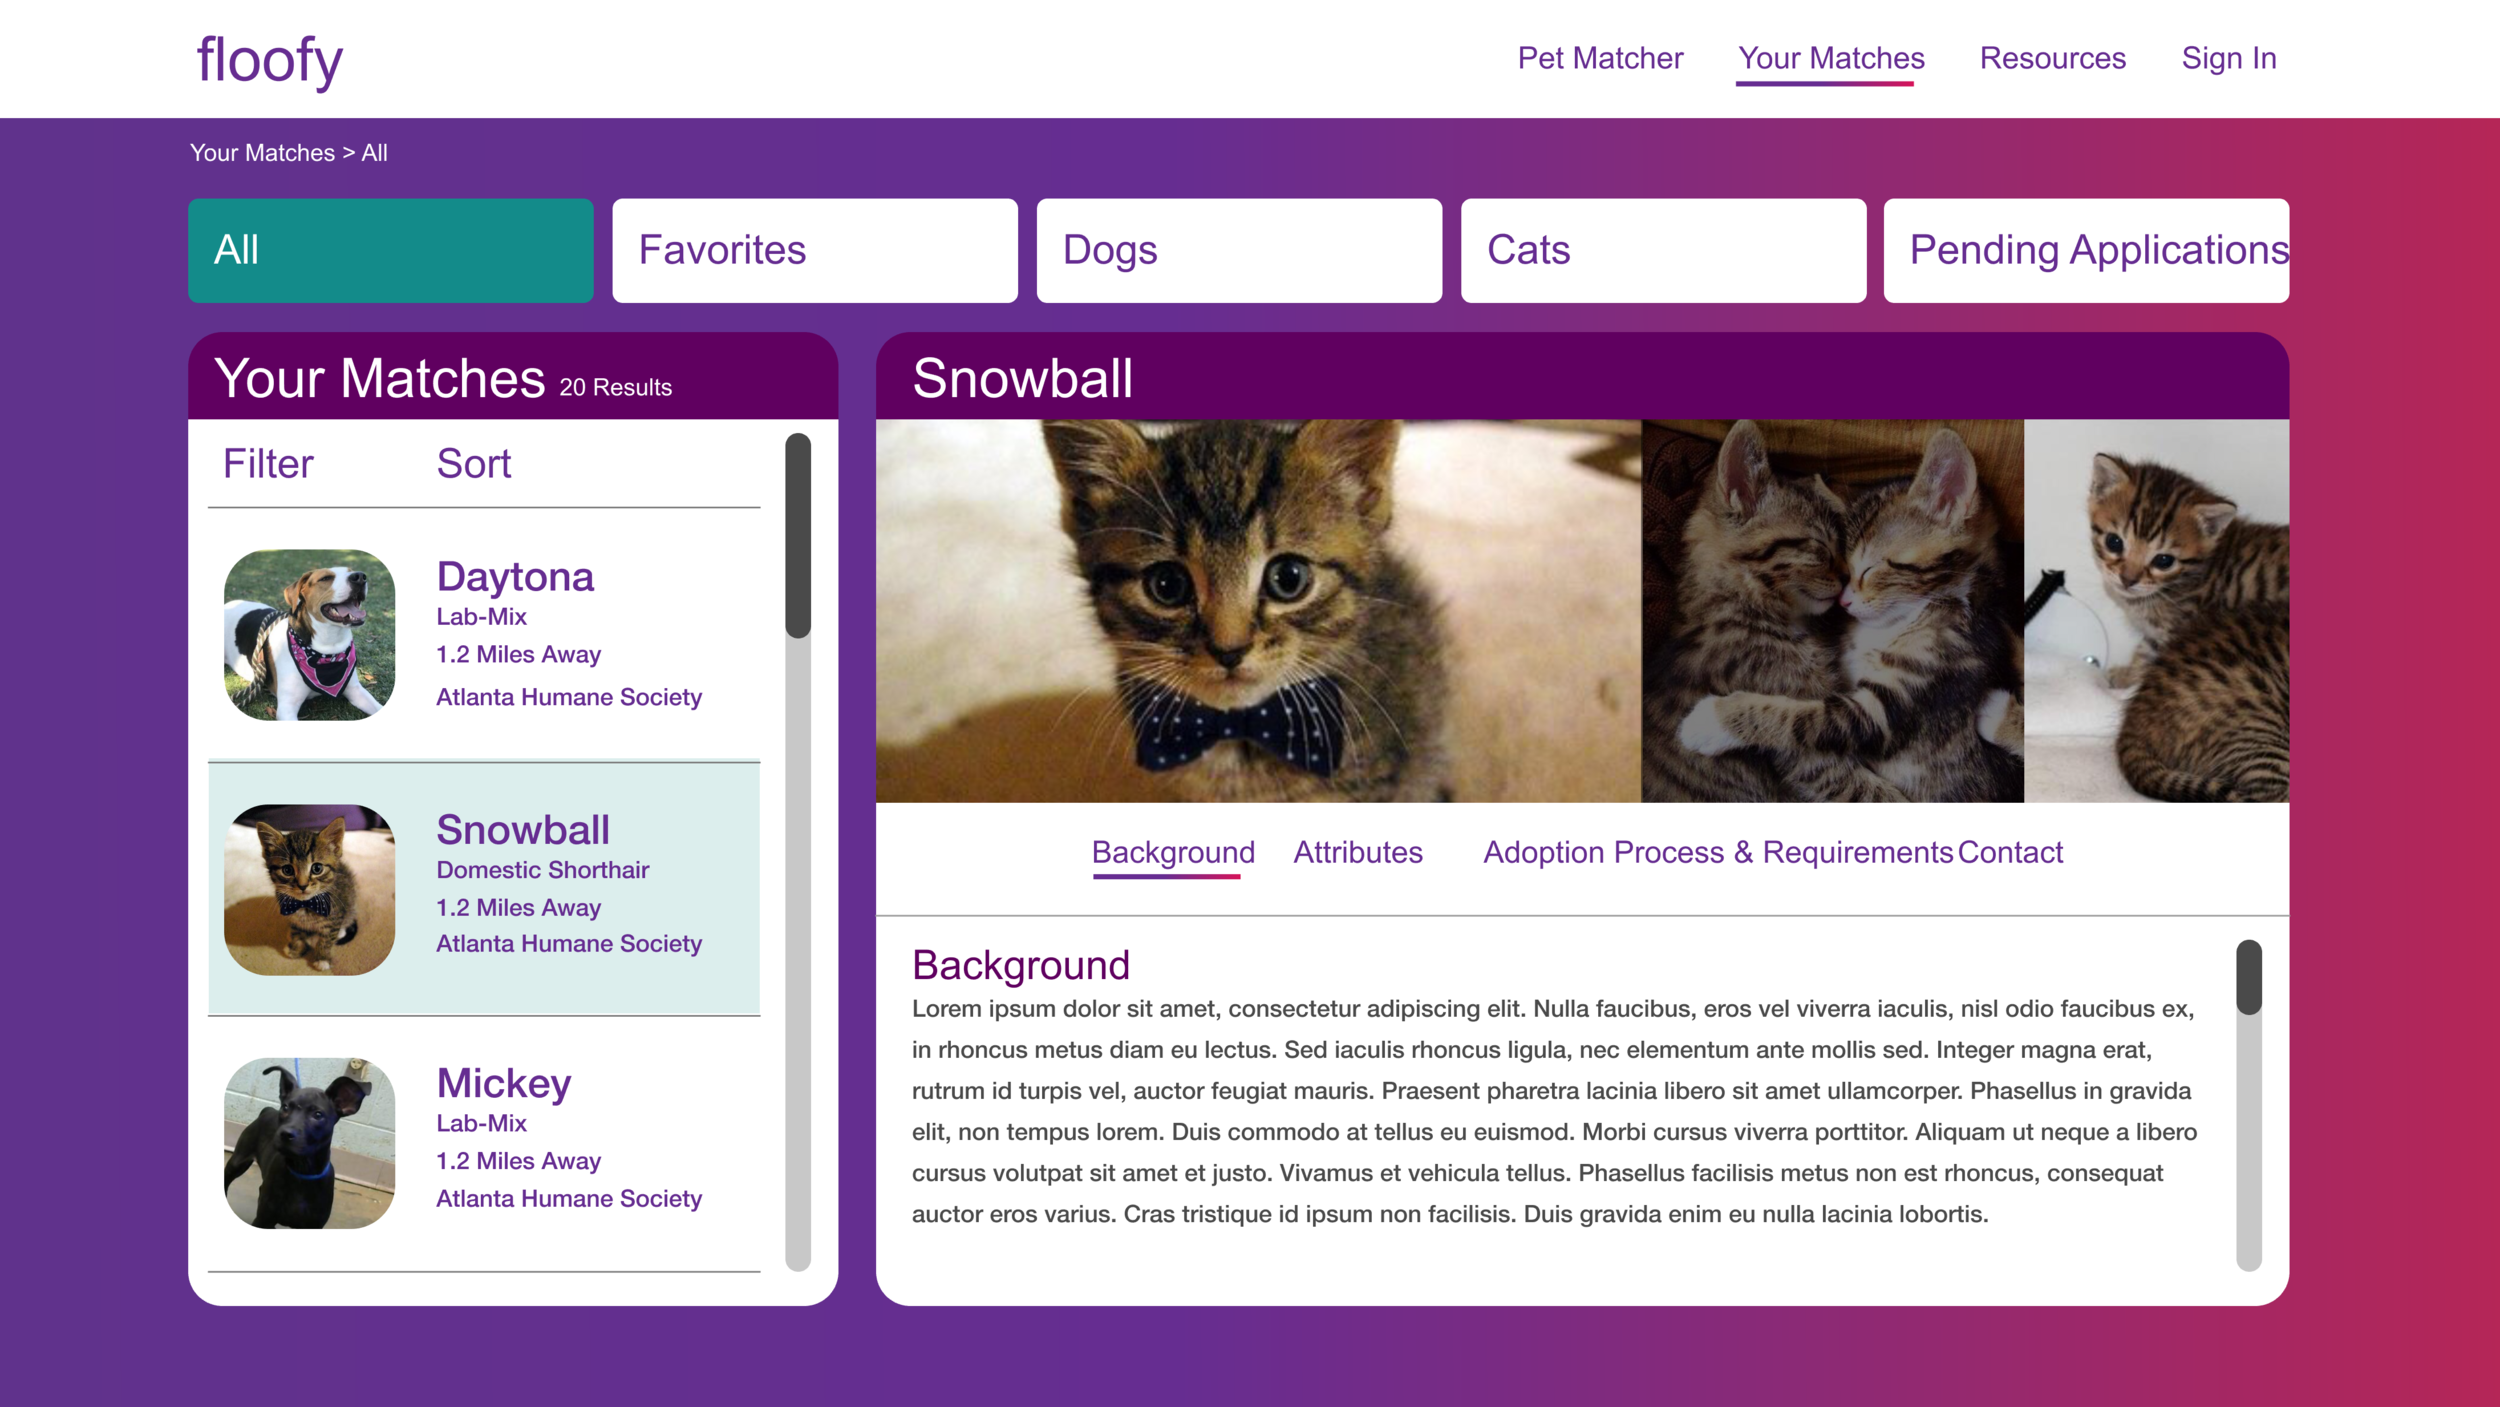 Pet Matches Dashboard - Users can see the pets that they matched with depending on the answers they gave during the Pet Matching Quiz.